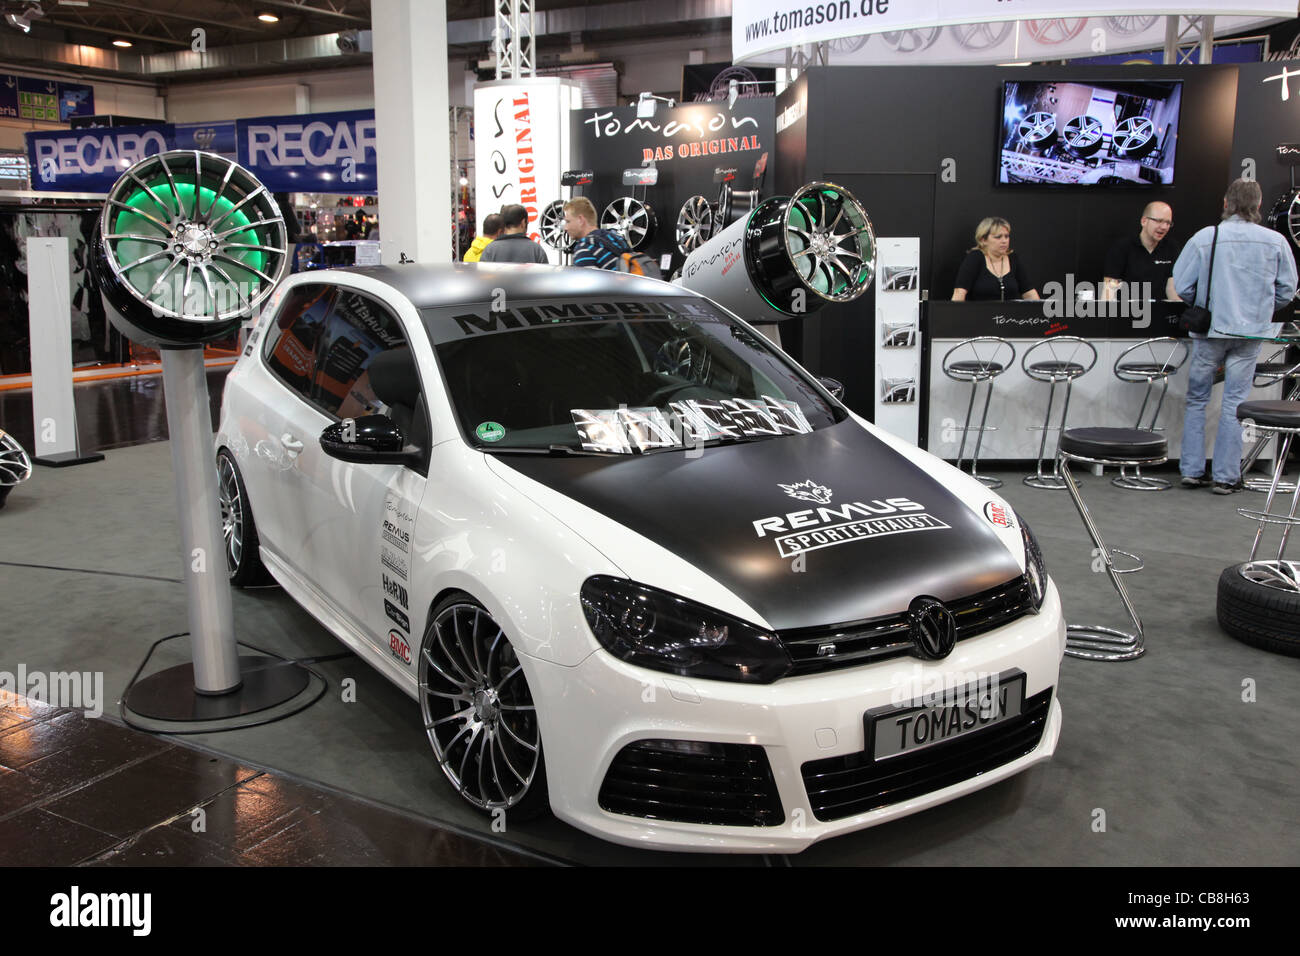 VW Golf GTI shown at the Essen Motor Show in Essen, Germany, on November 29, 2011 - Stock Image